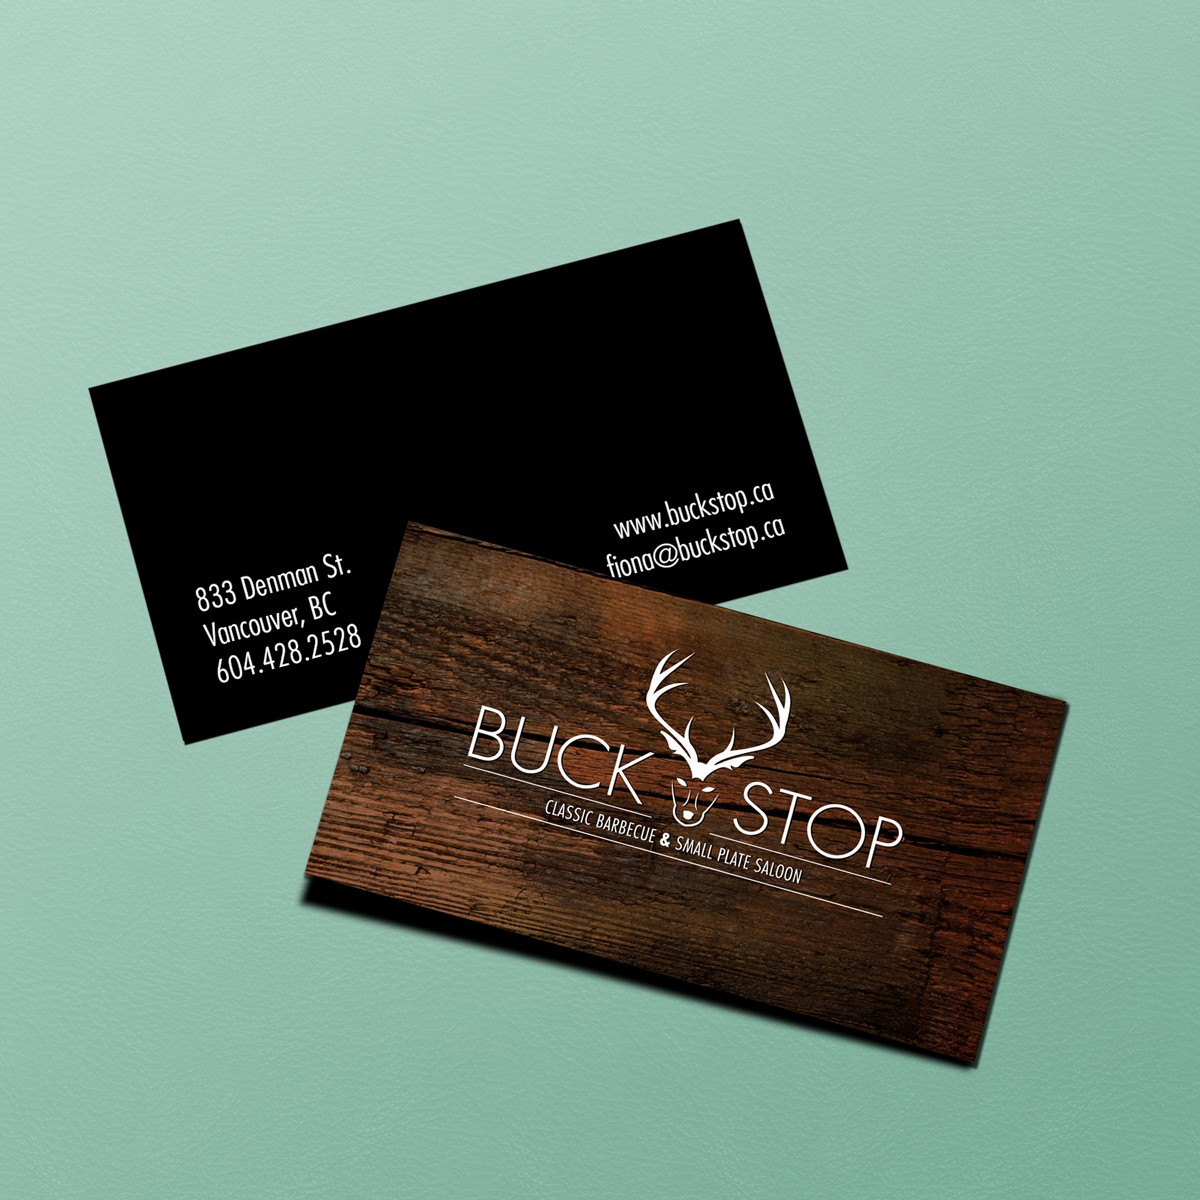 Buckstop vancouver business card design pulp pixel buckstop vancouver business card design reheart Image collections